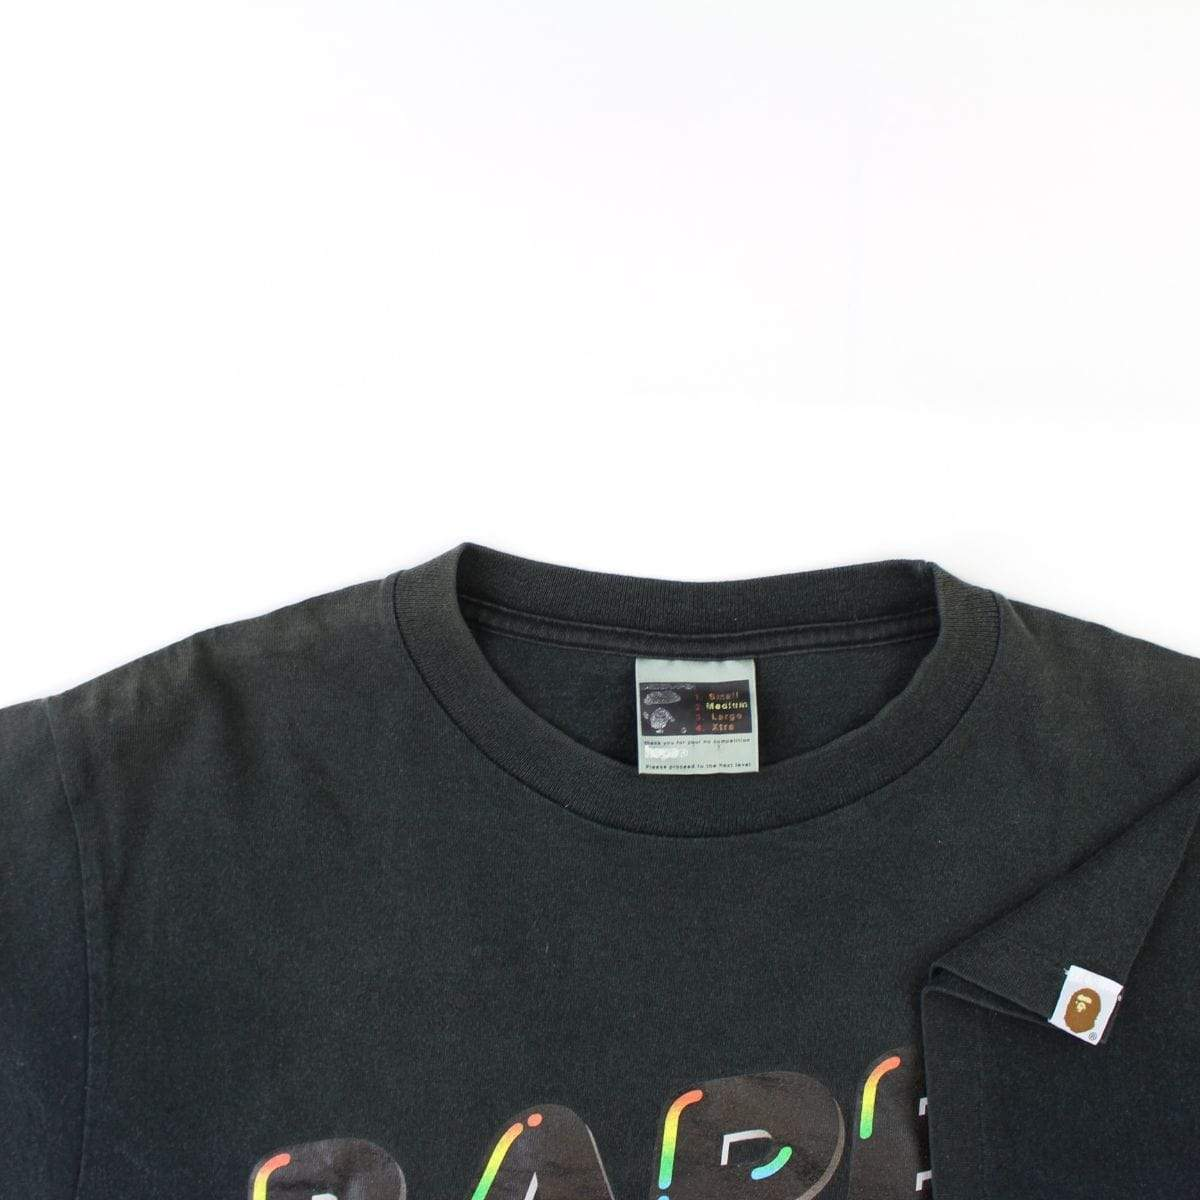 Bape Rainbow Bubble Text Tee Black - SaruGeneral